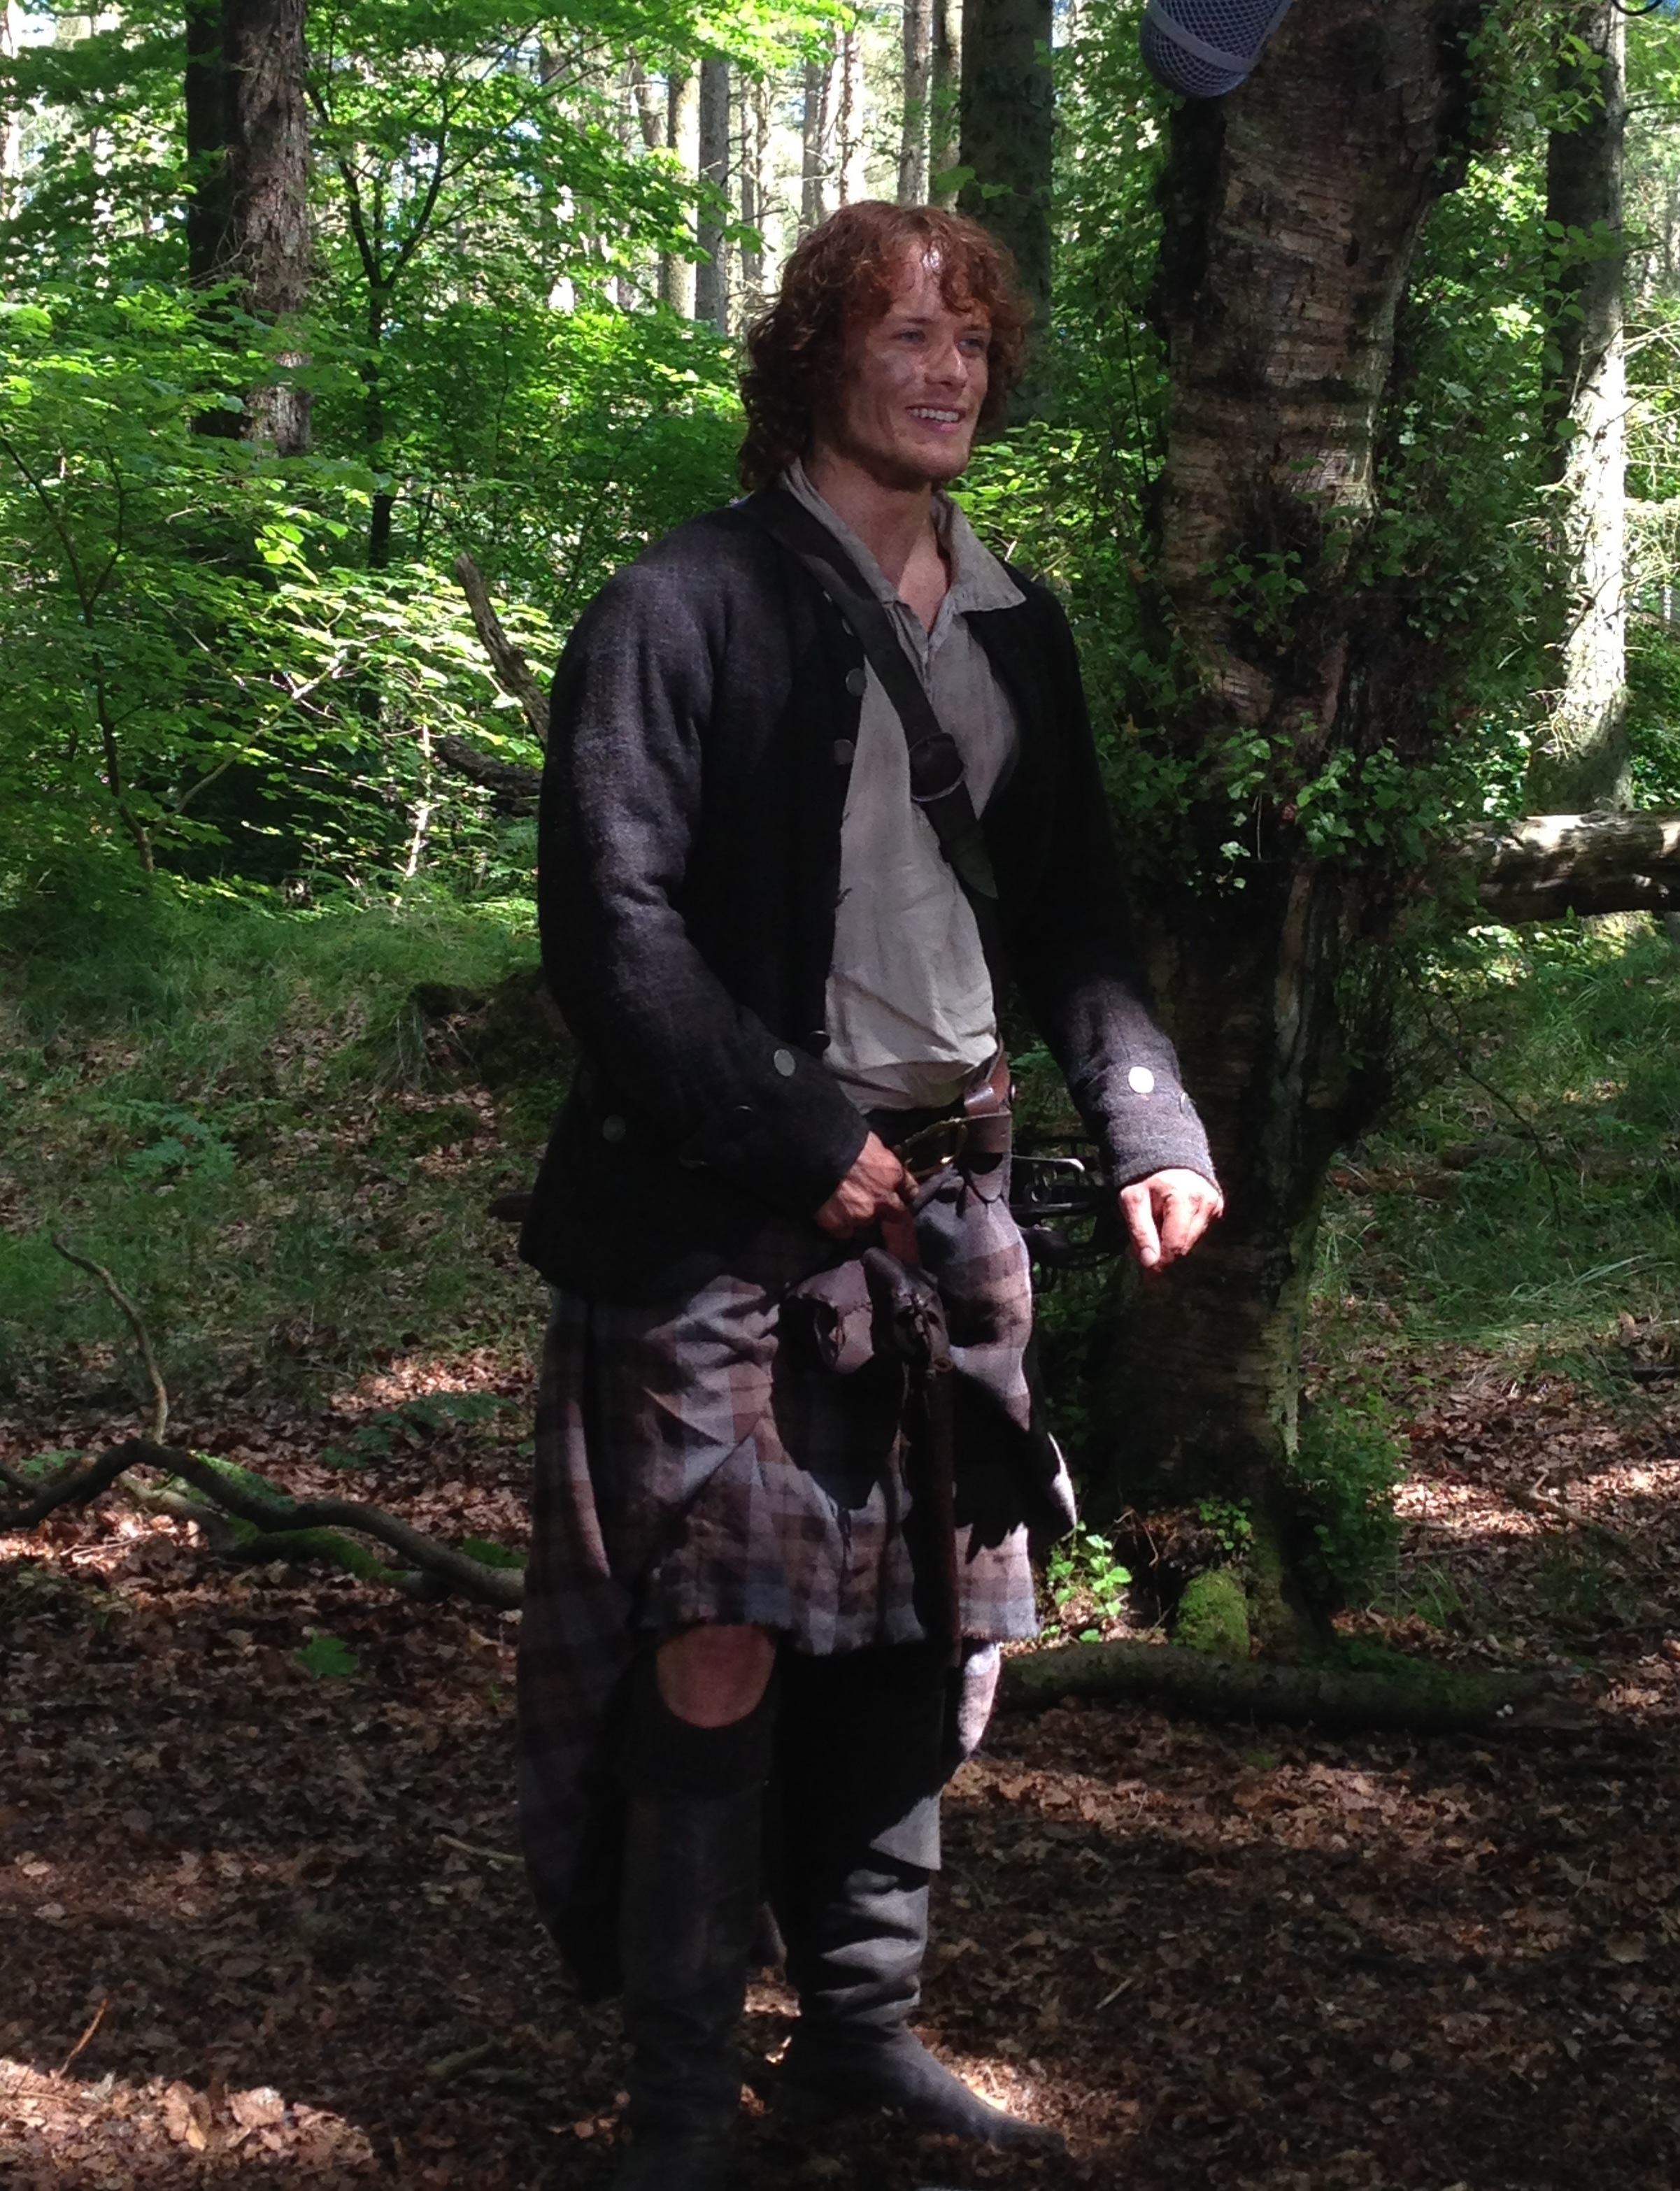 Sam Heughan as Jamie Fraser #Outlander